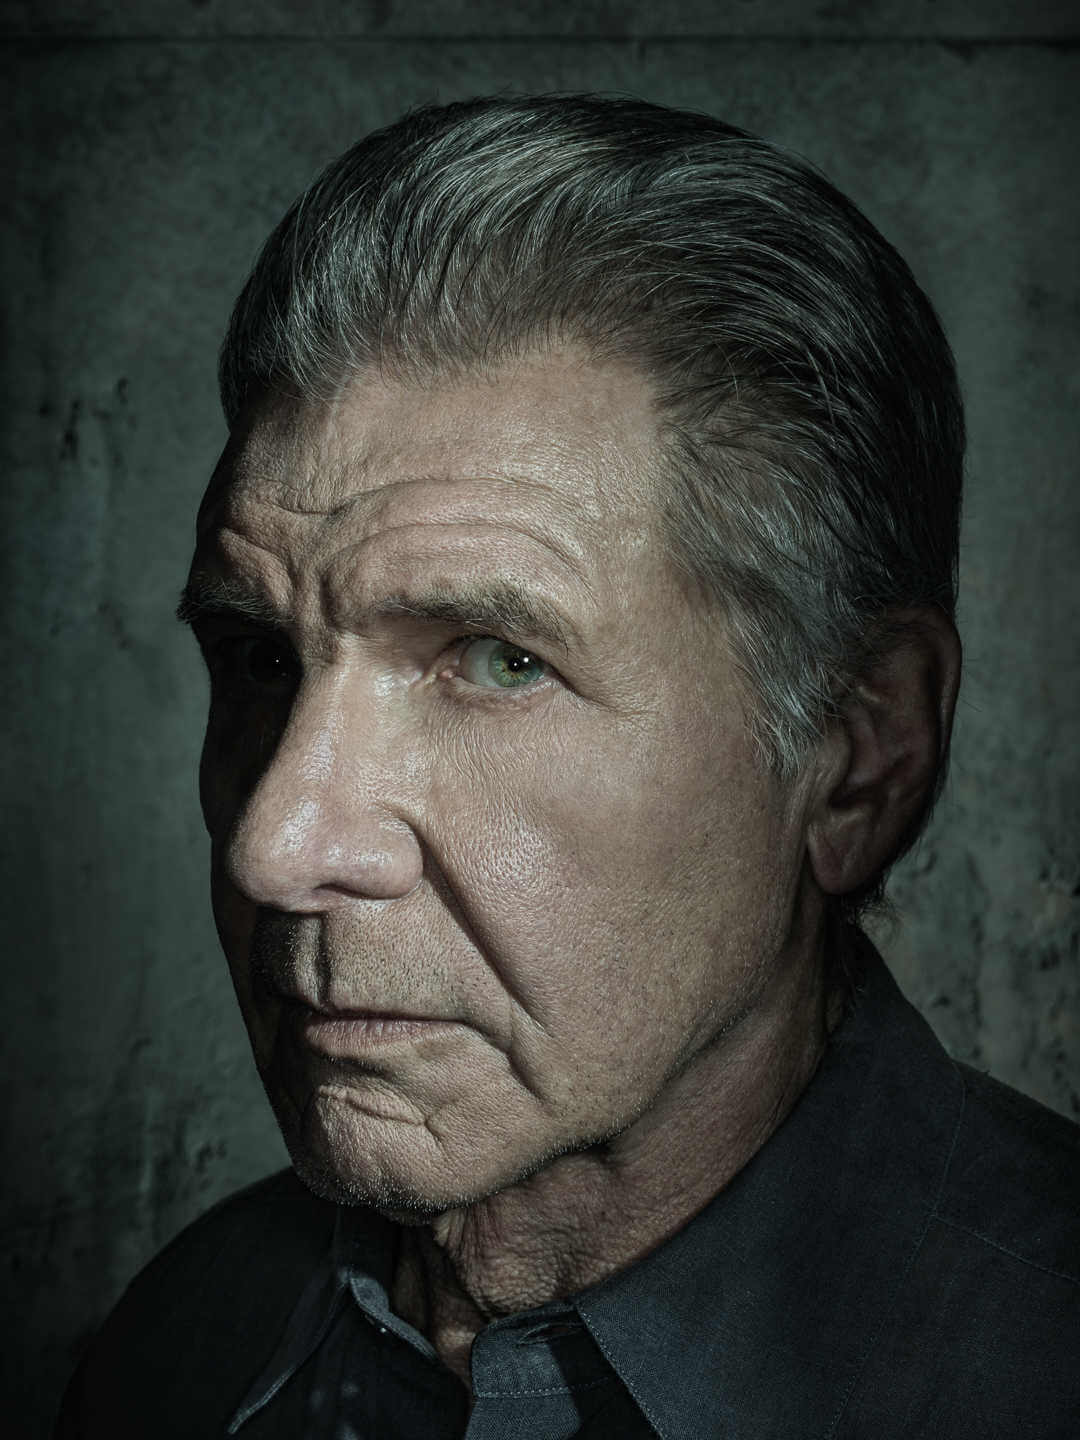 RETRATO DE HARRISON FORD